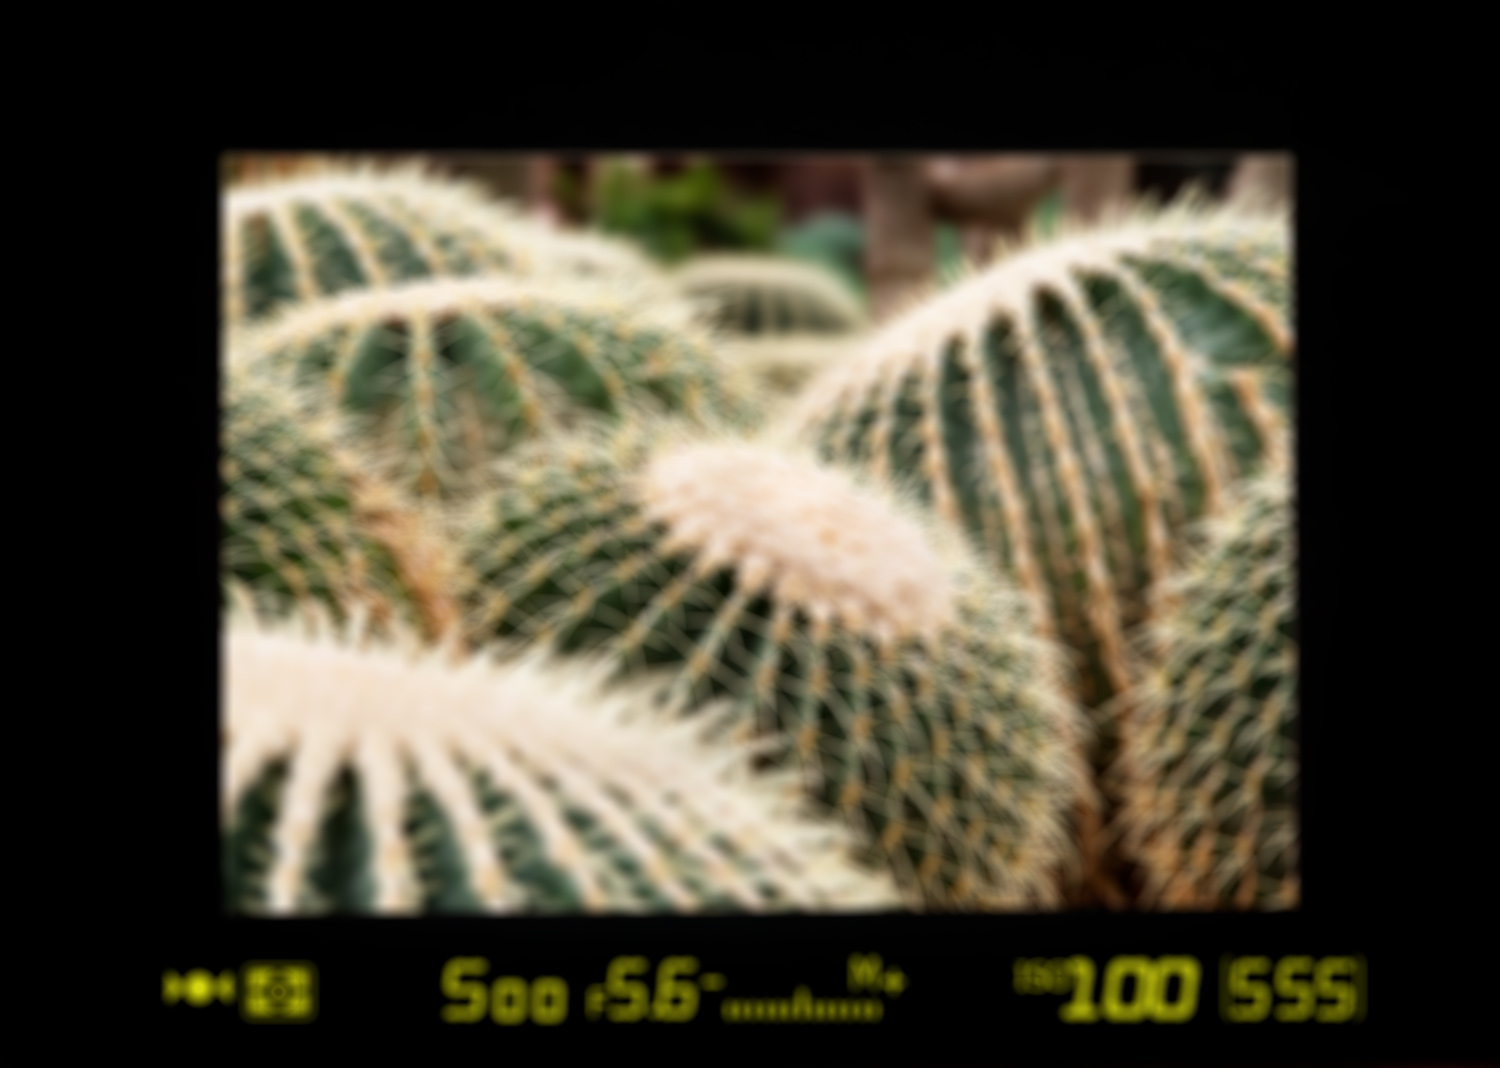 Demonstration of diopter blur photo - Viewfinder Image Blurry? You May Need to Adjust Your Camera's Diopter - Here's How